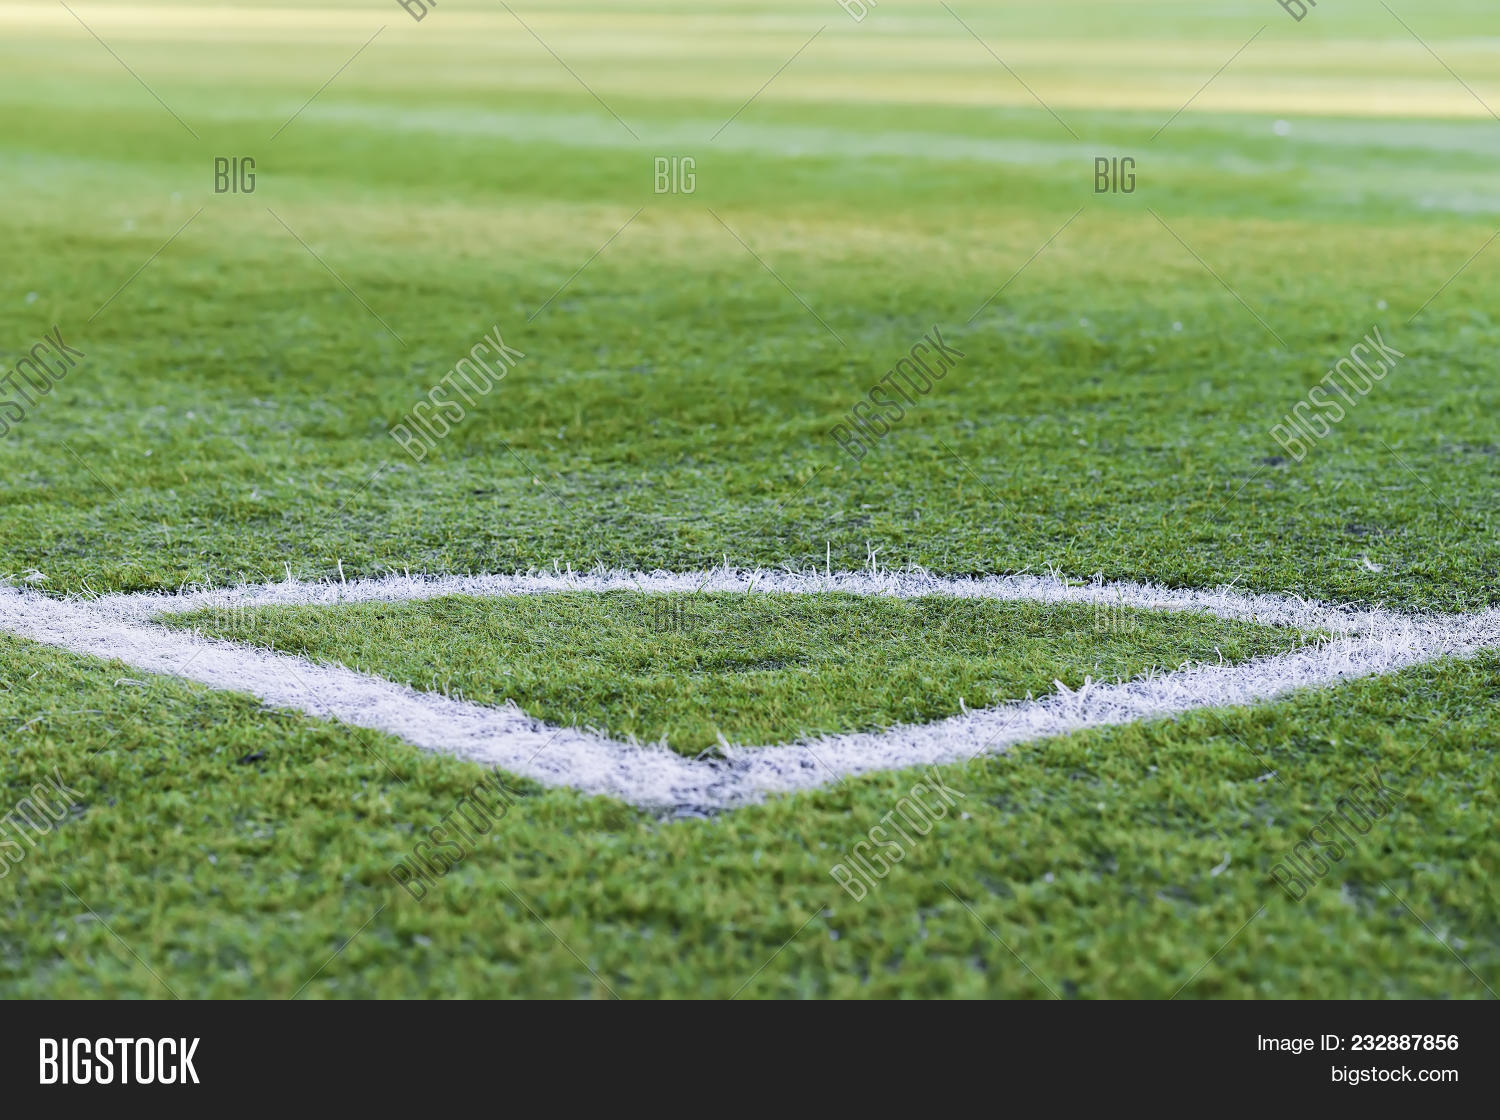 green grass football field football ground corner of the soccer field pattern green grass for football sport field image photo free trial bigstock